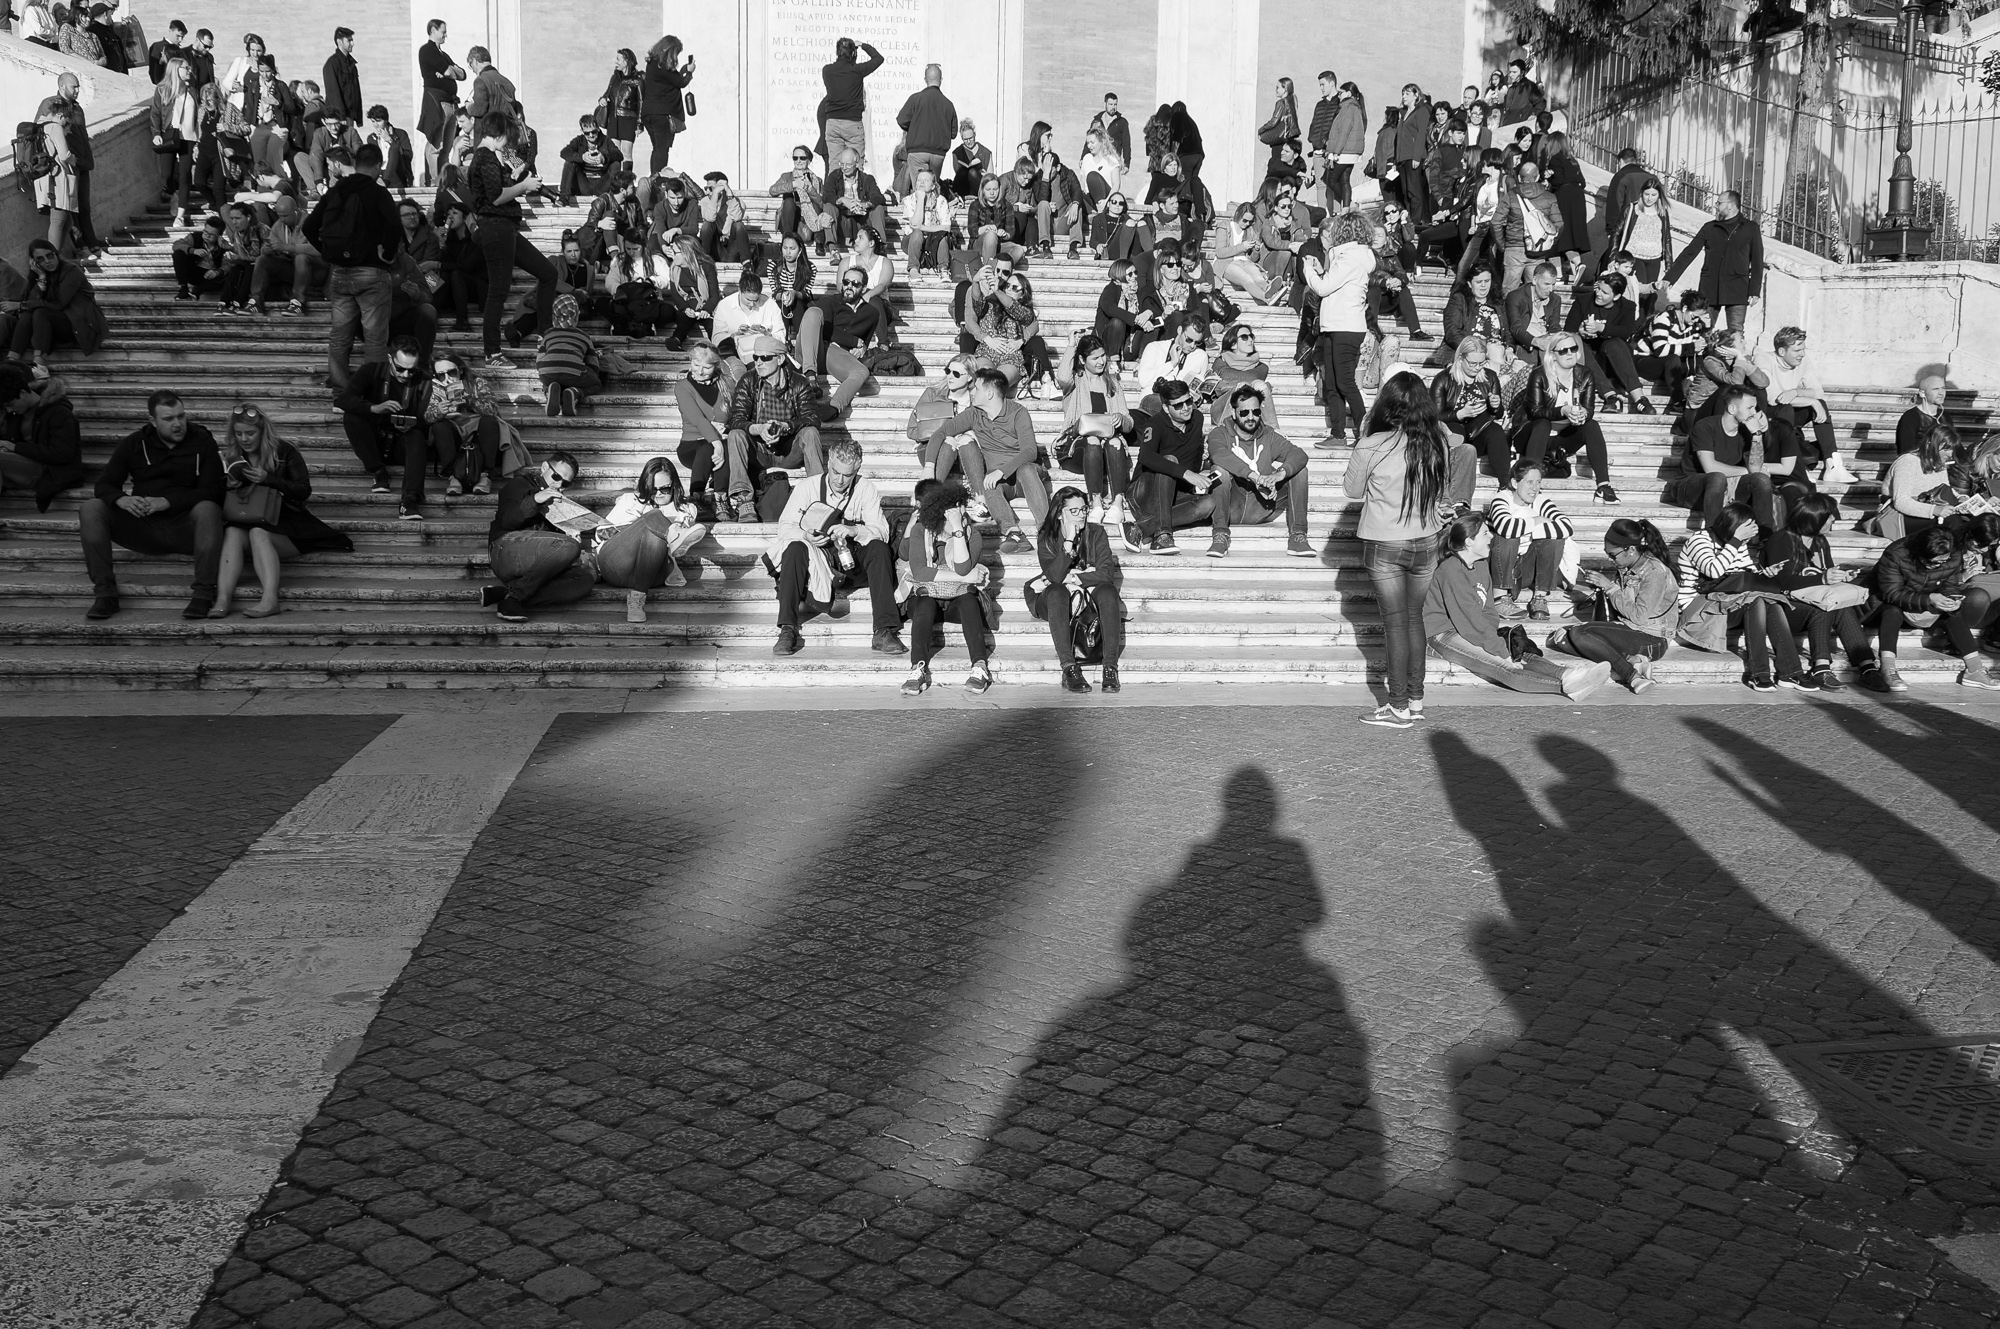 Evening light at Spanish steps, Rome 2018